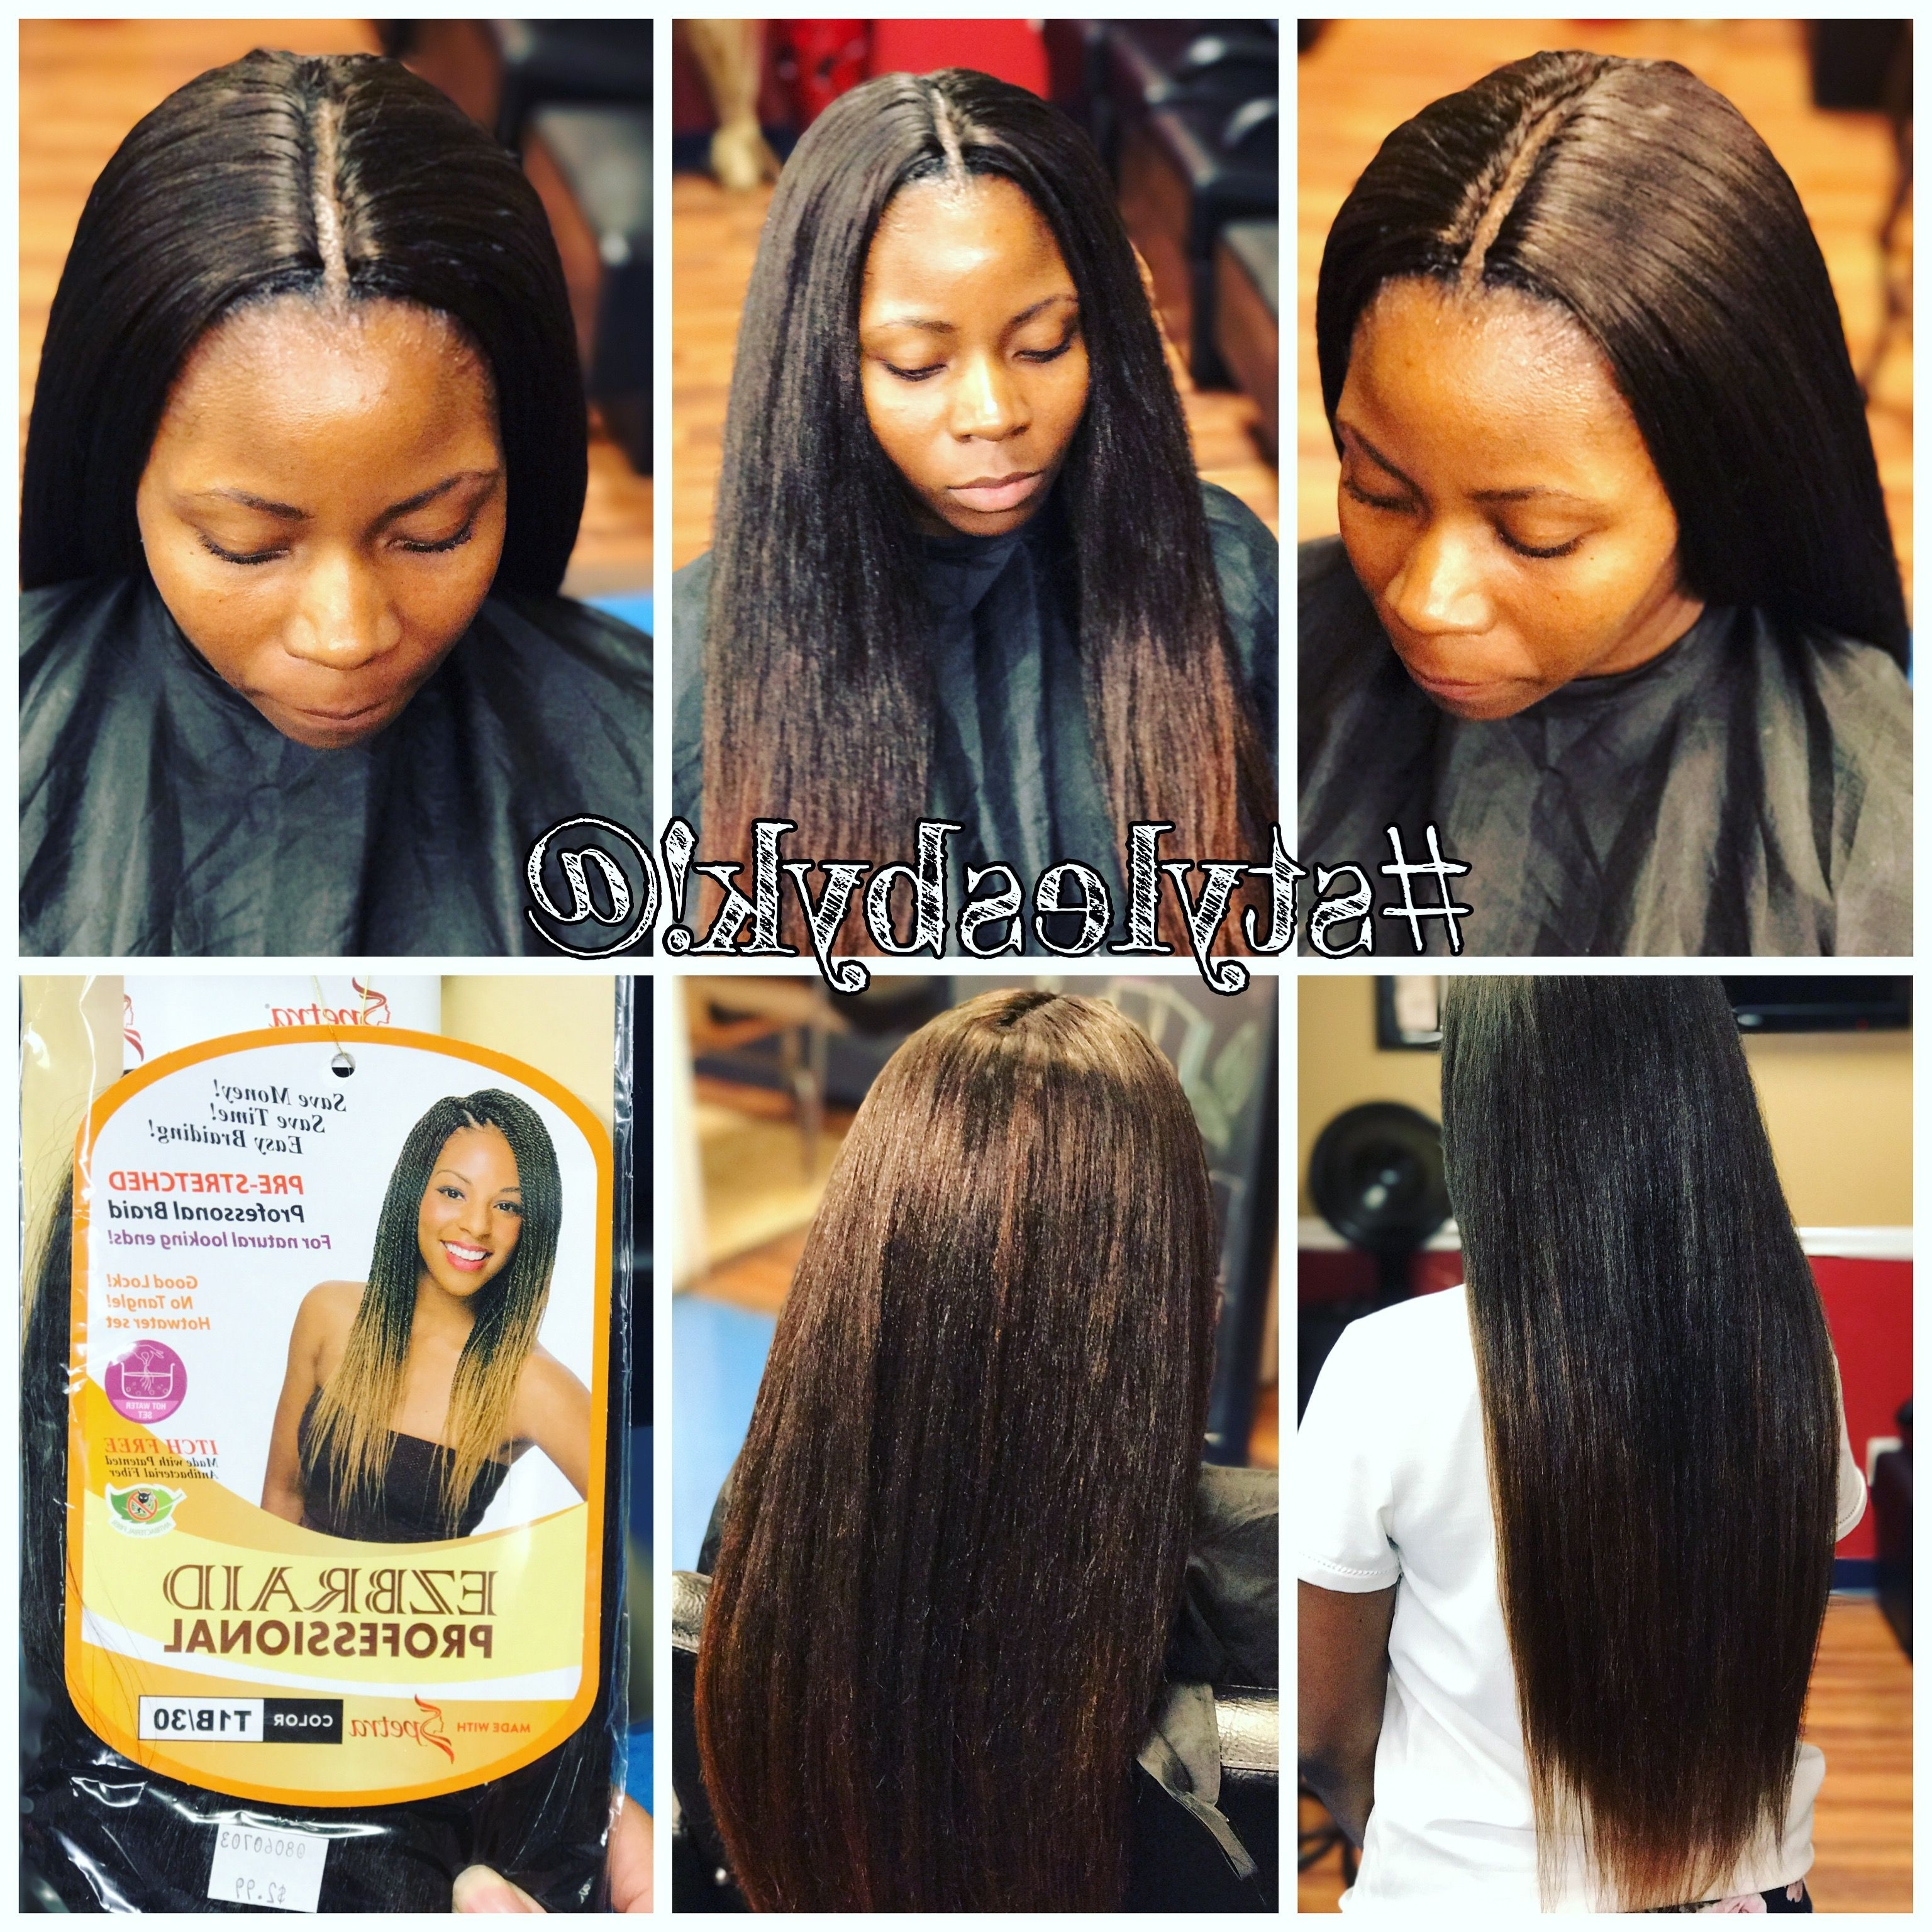 Straight Crochet Braids On Natural Hair Using Ez Braid Braiding Hair For Recent Braided Hairstyles With Crochet (View 12 of 15)